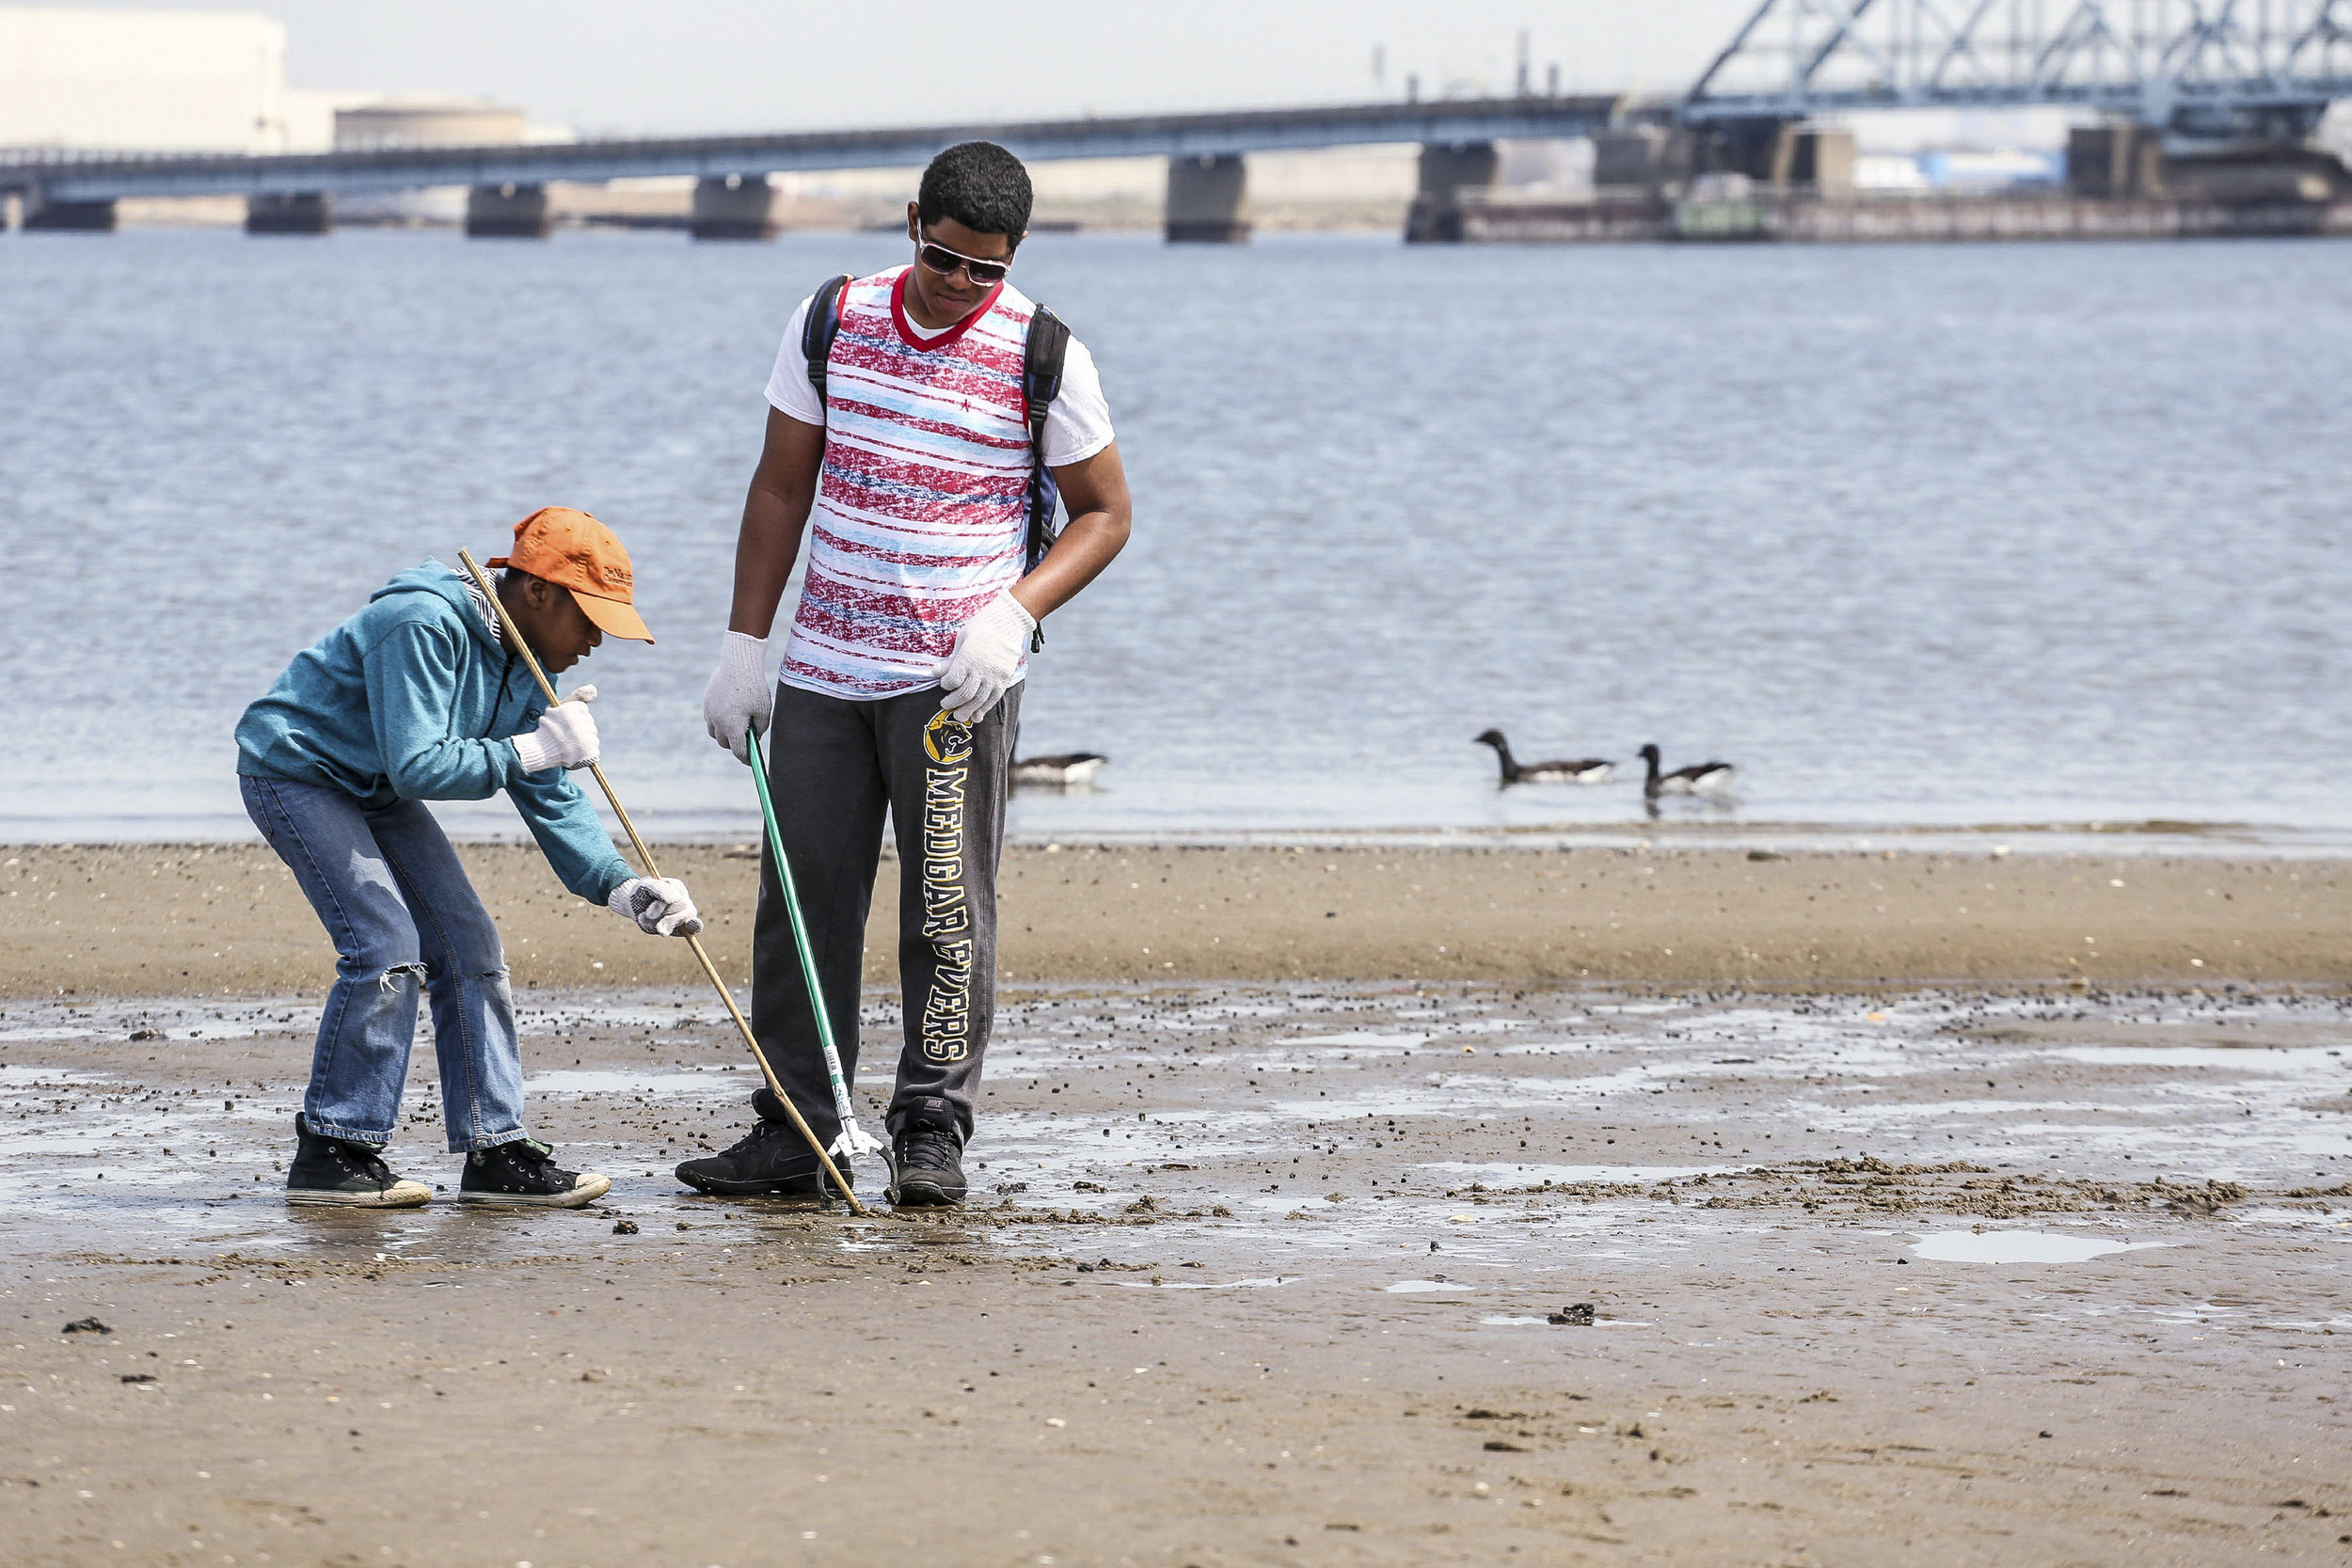 """More than 200 volunteers turned out to a """"Connect with Nature"""" beach cleanup at Jamaica Bay Wildlife Refuge in New York City.  Give an """"Hour for the Ocean"""" at a beach cleanup near you this Saturday!  Photo by Jonathan Grassi."""